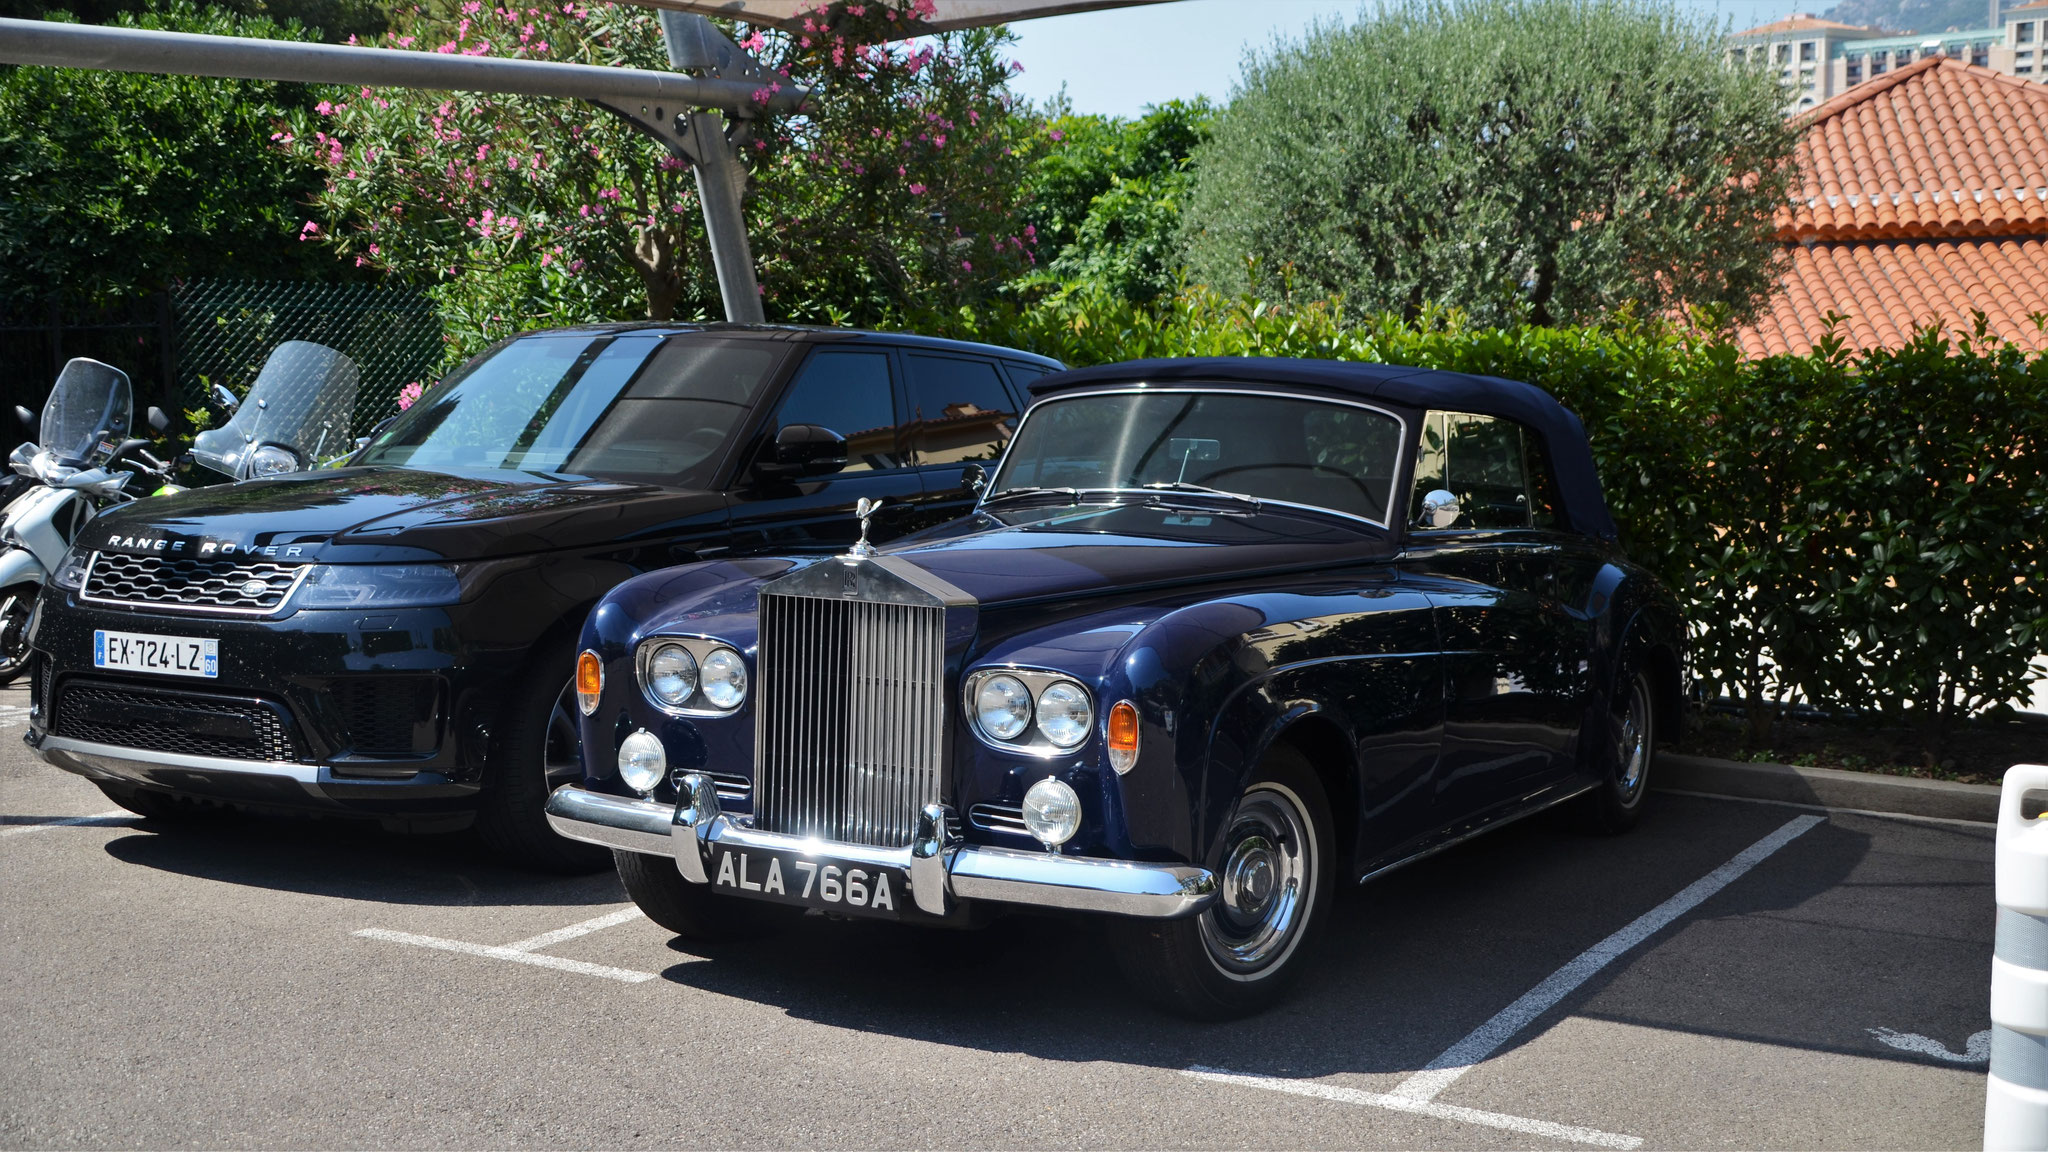 Rolls Royce Silver Cloud Convertible - ALA-766-A (GB)